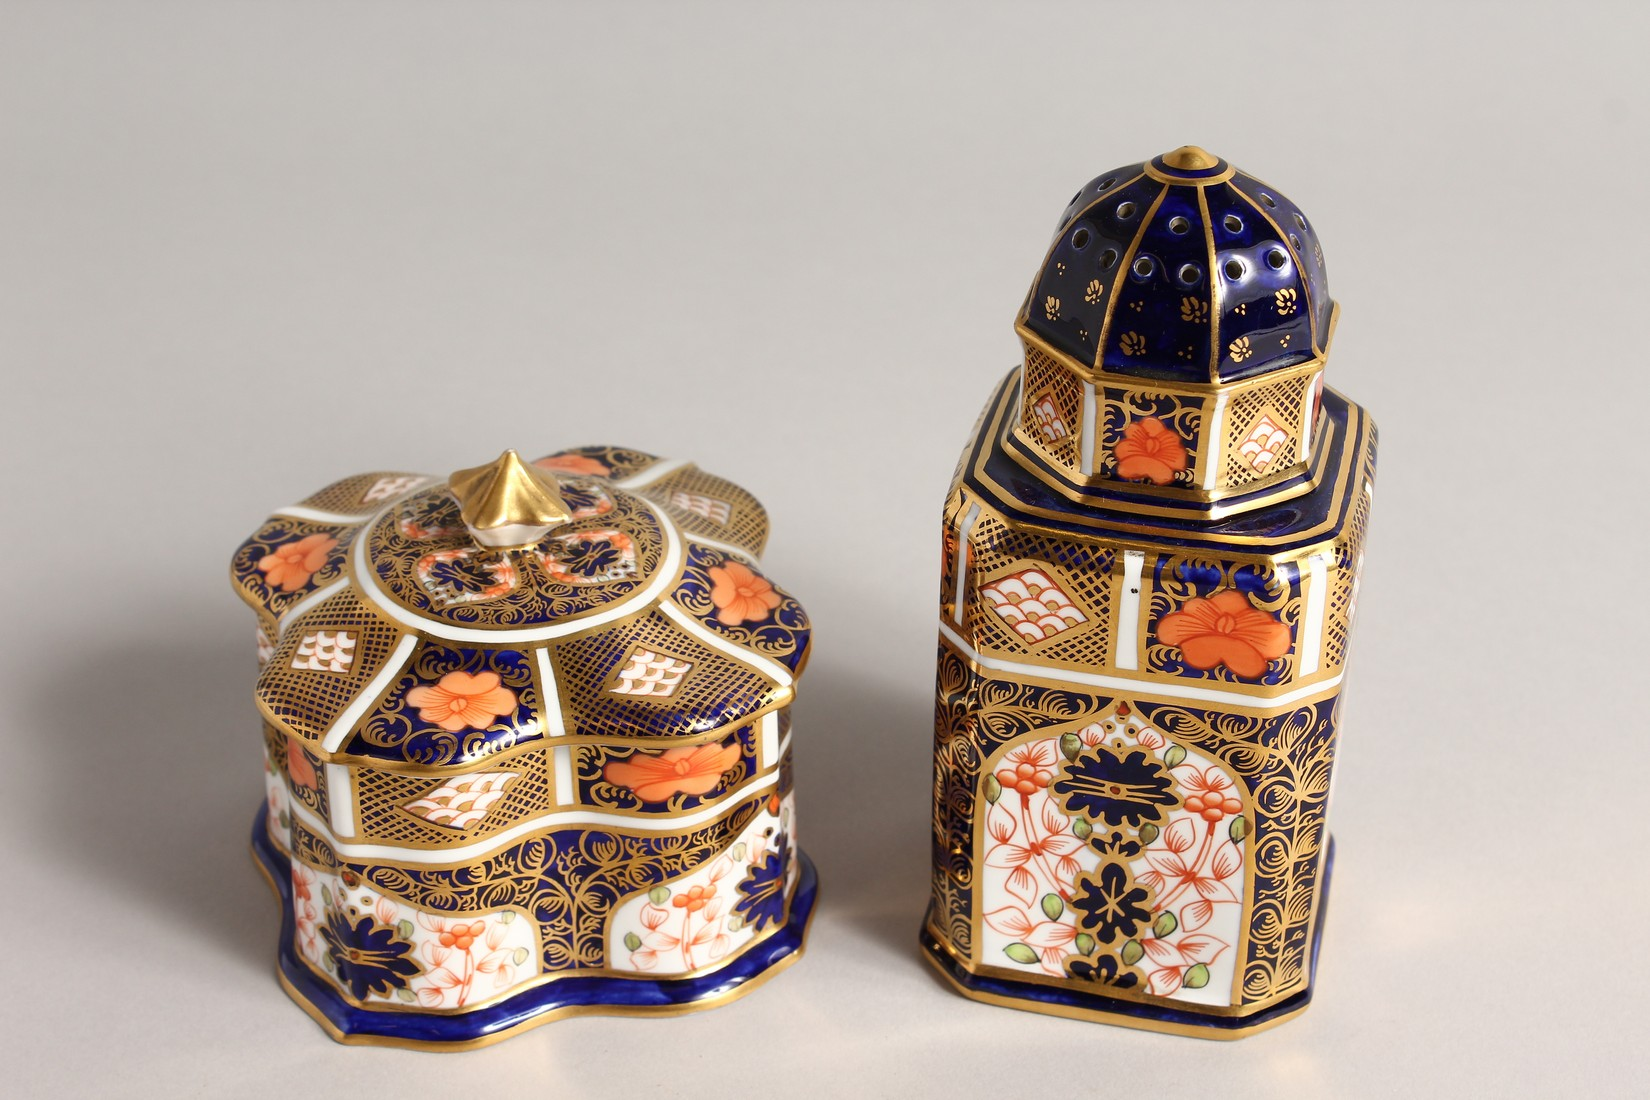 A ROYAL CROWN DERBY JAPAN PATTERN SQUARE SUGAR SIFTER, No. 1128. 6ins high and a SQUARE SUPERB BOX - Image 4 of 10